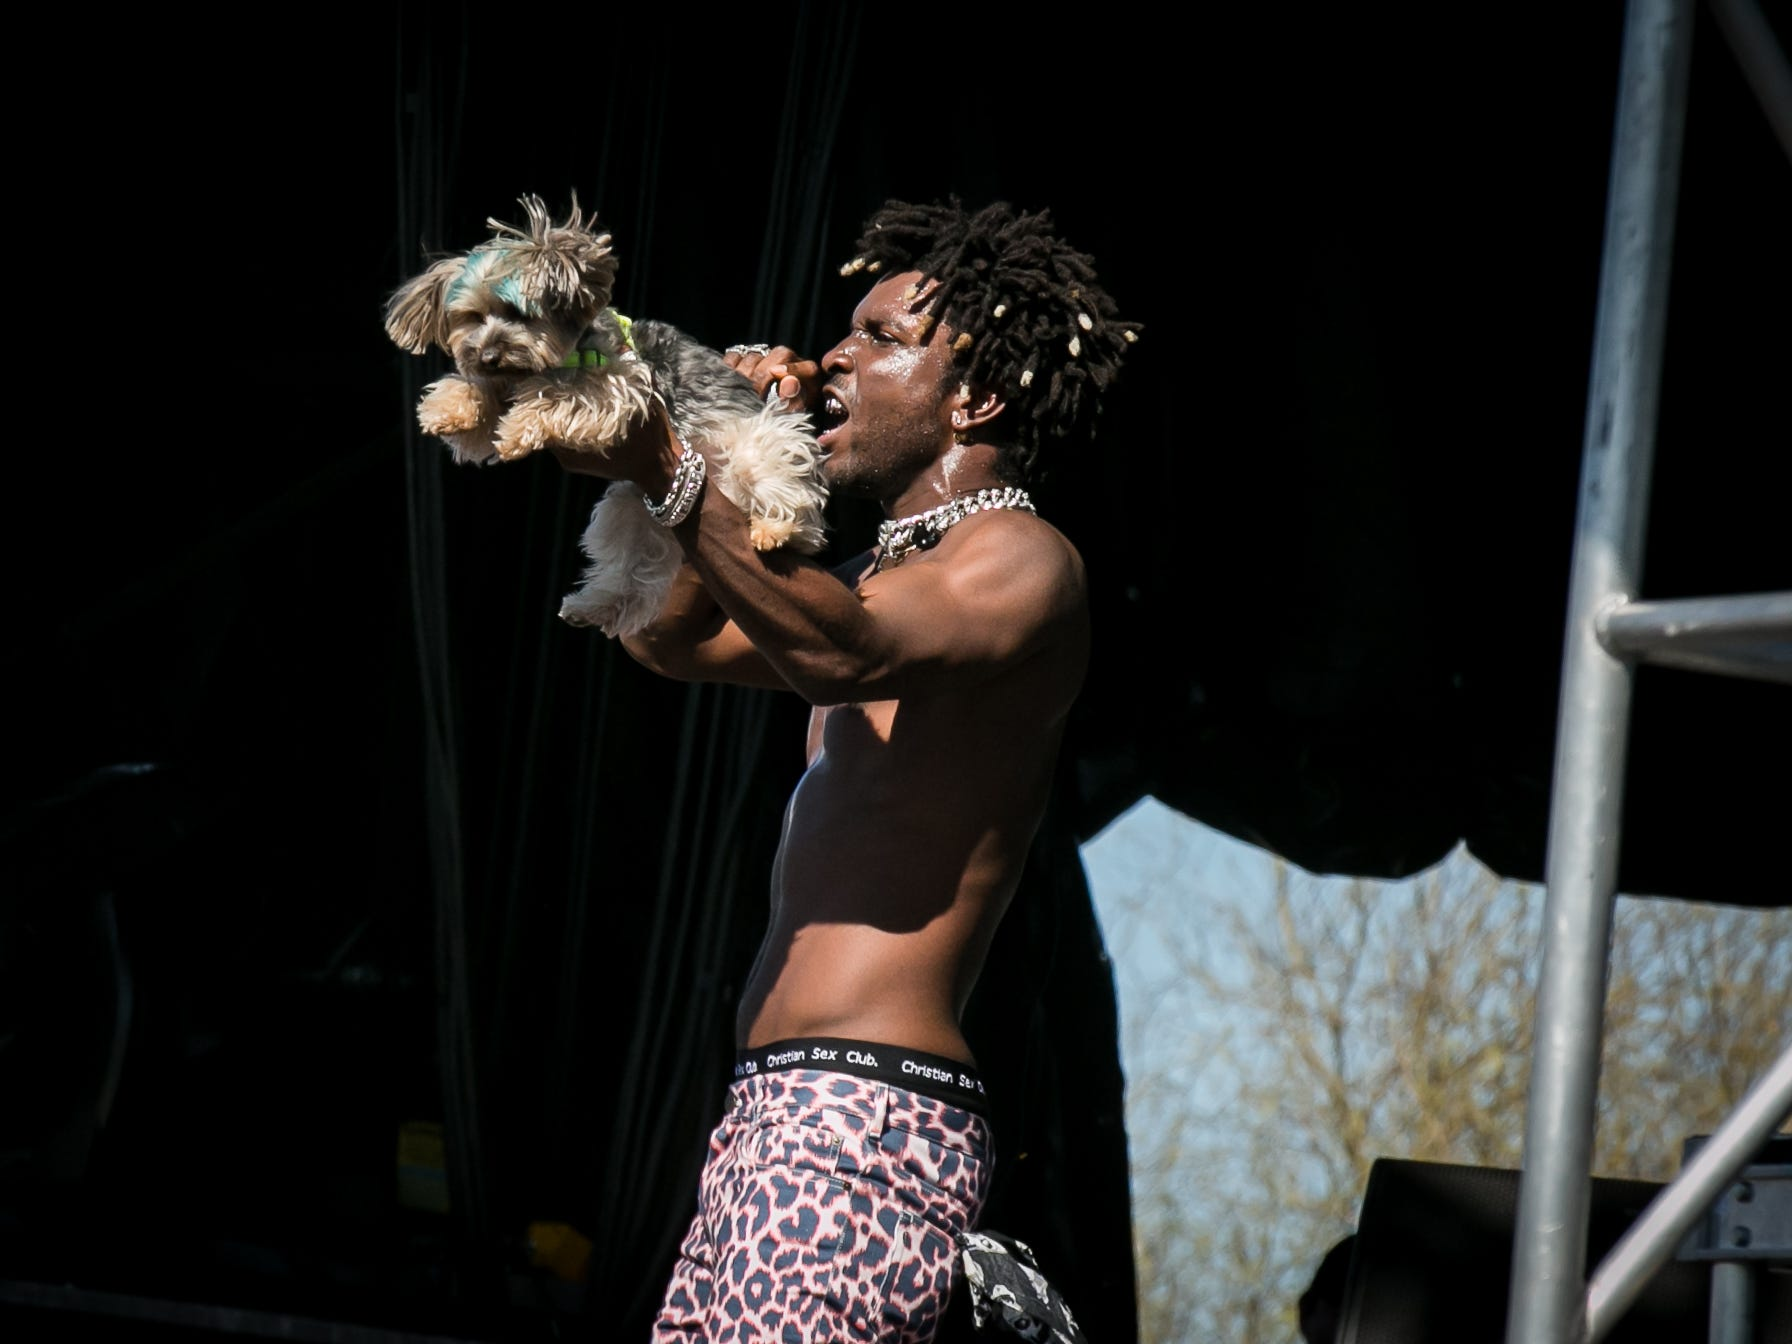 Saint Jhn performs at Pot of Gold Music Festival at Steele Indian School Park in Phoenix on Sunday, March 17.